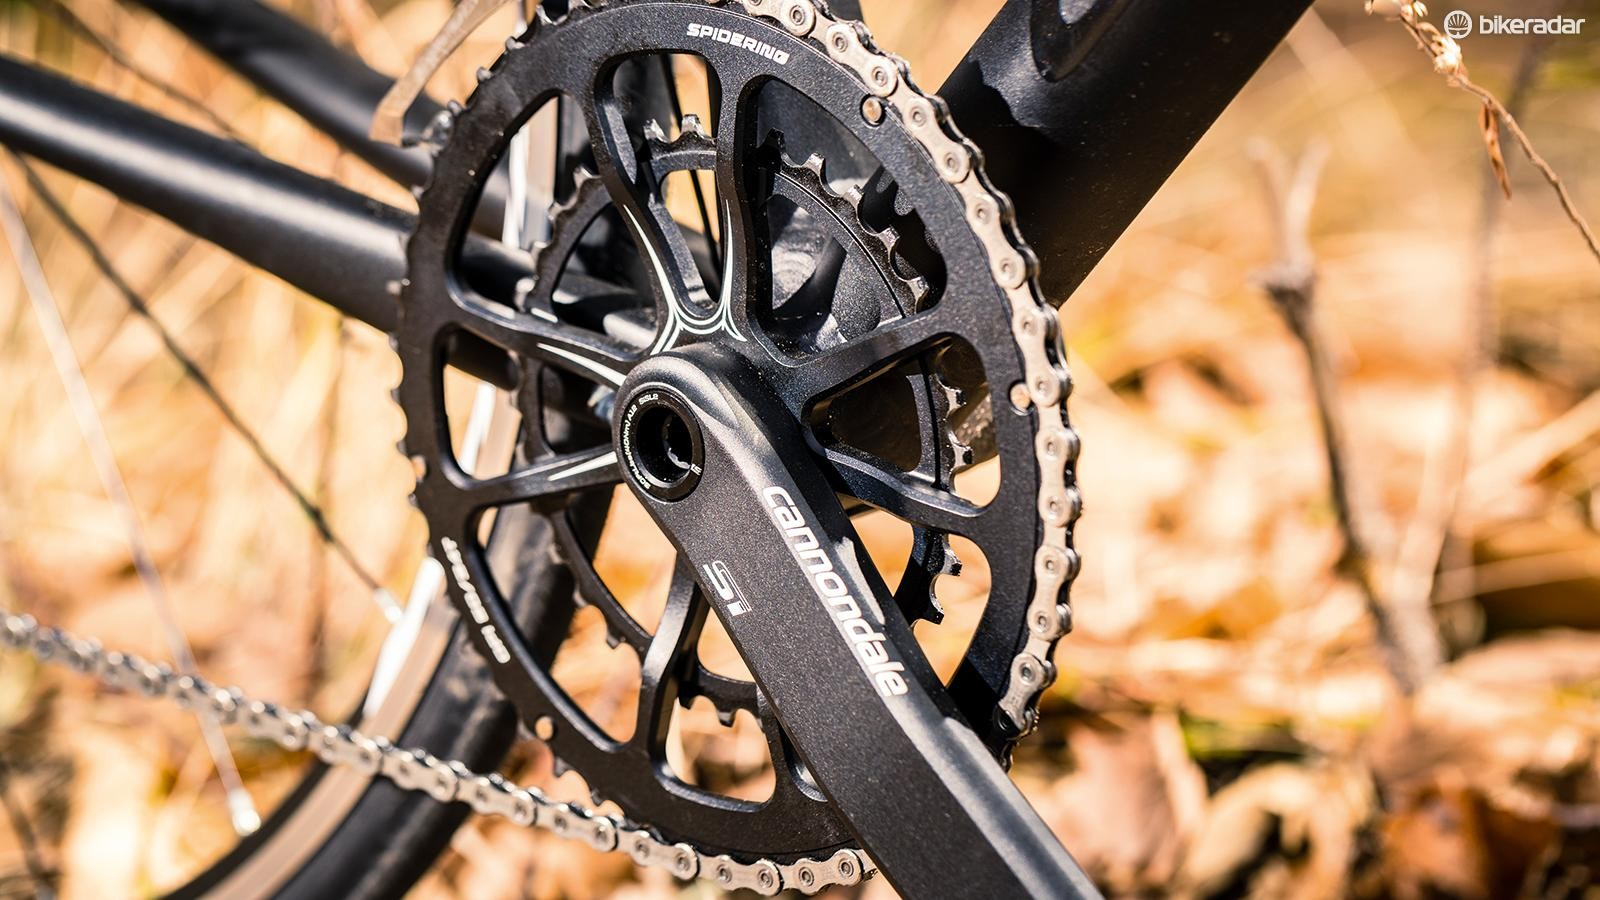 Cannondale's Hollowgram Si crank is a welcome addition